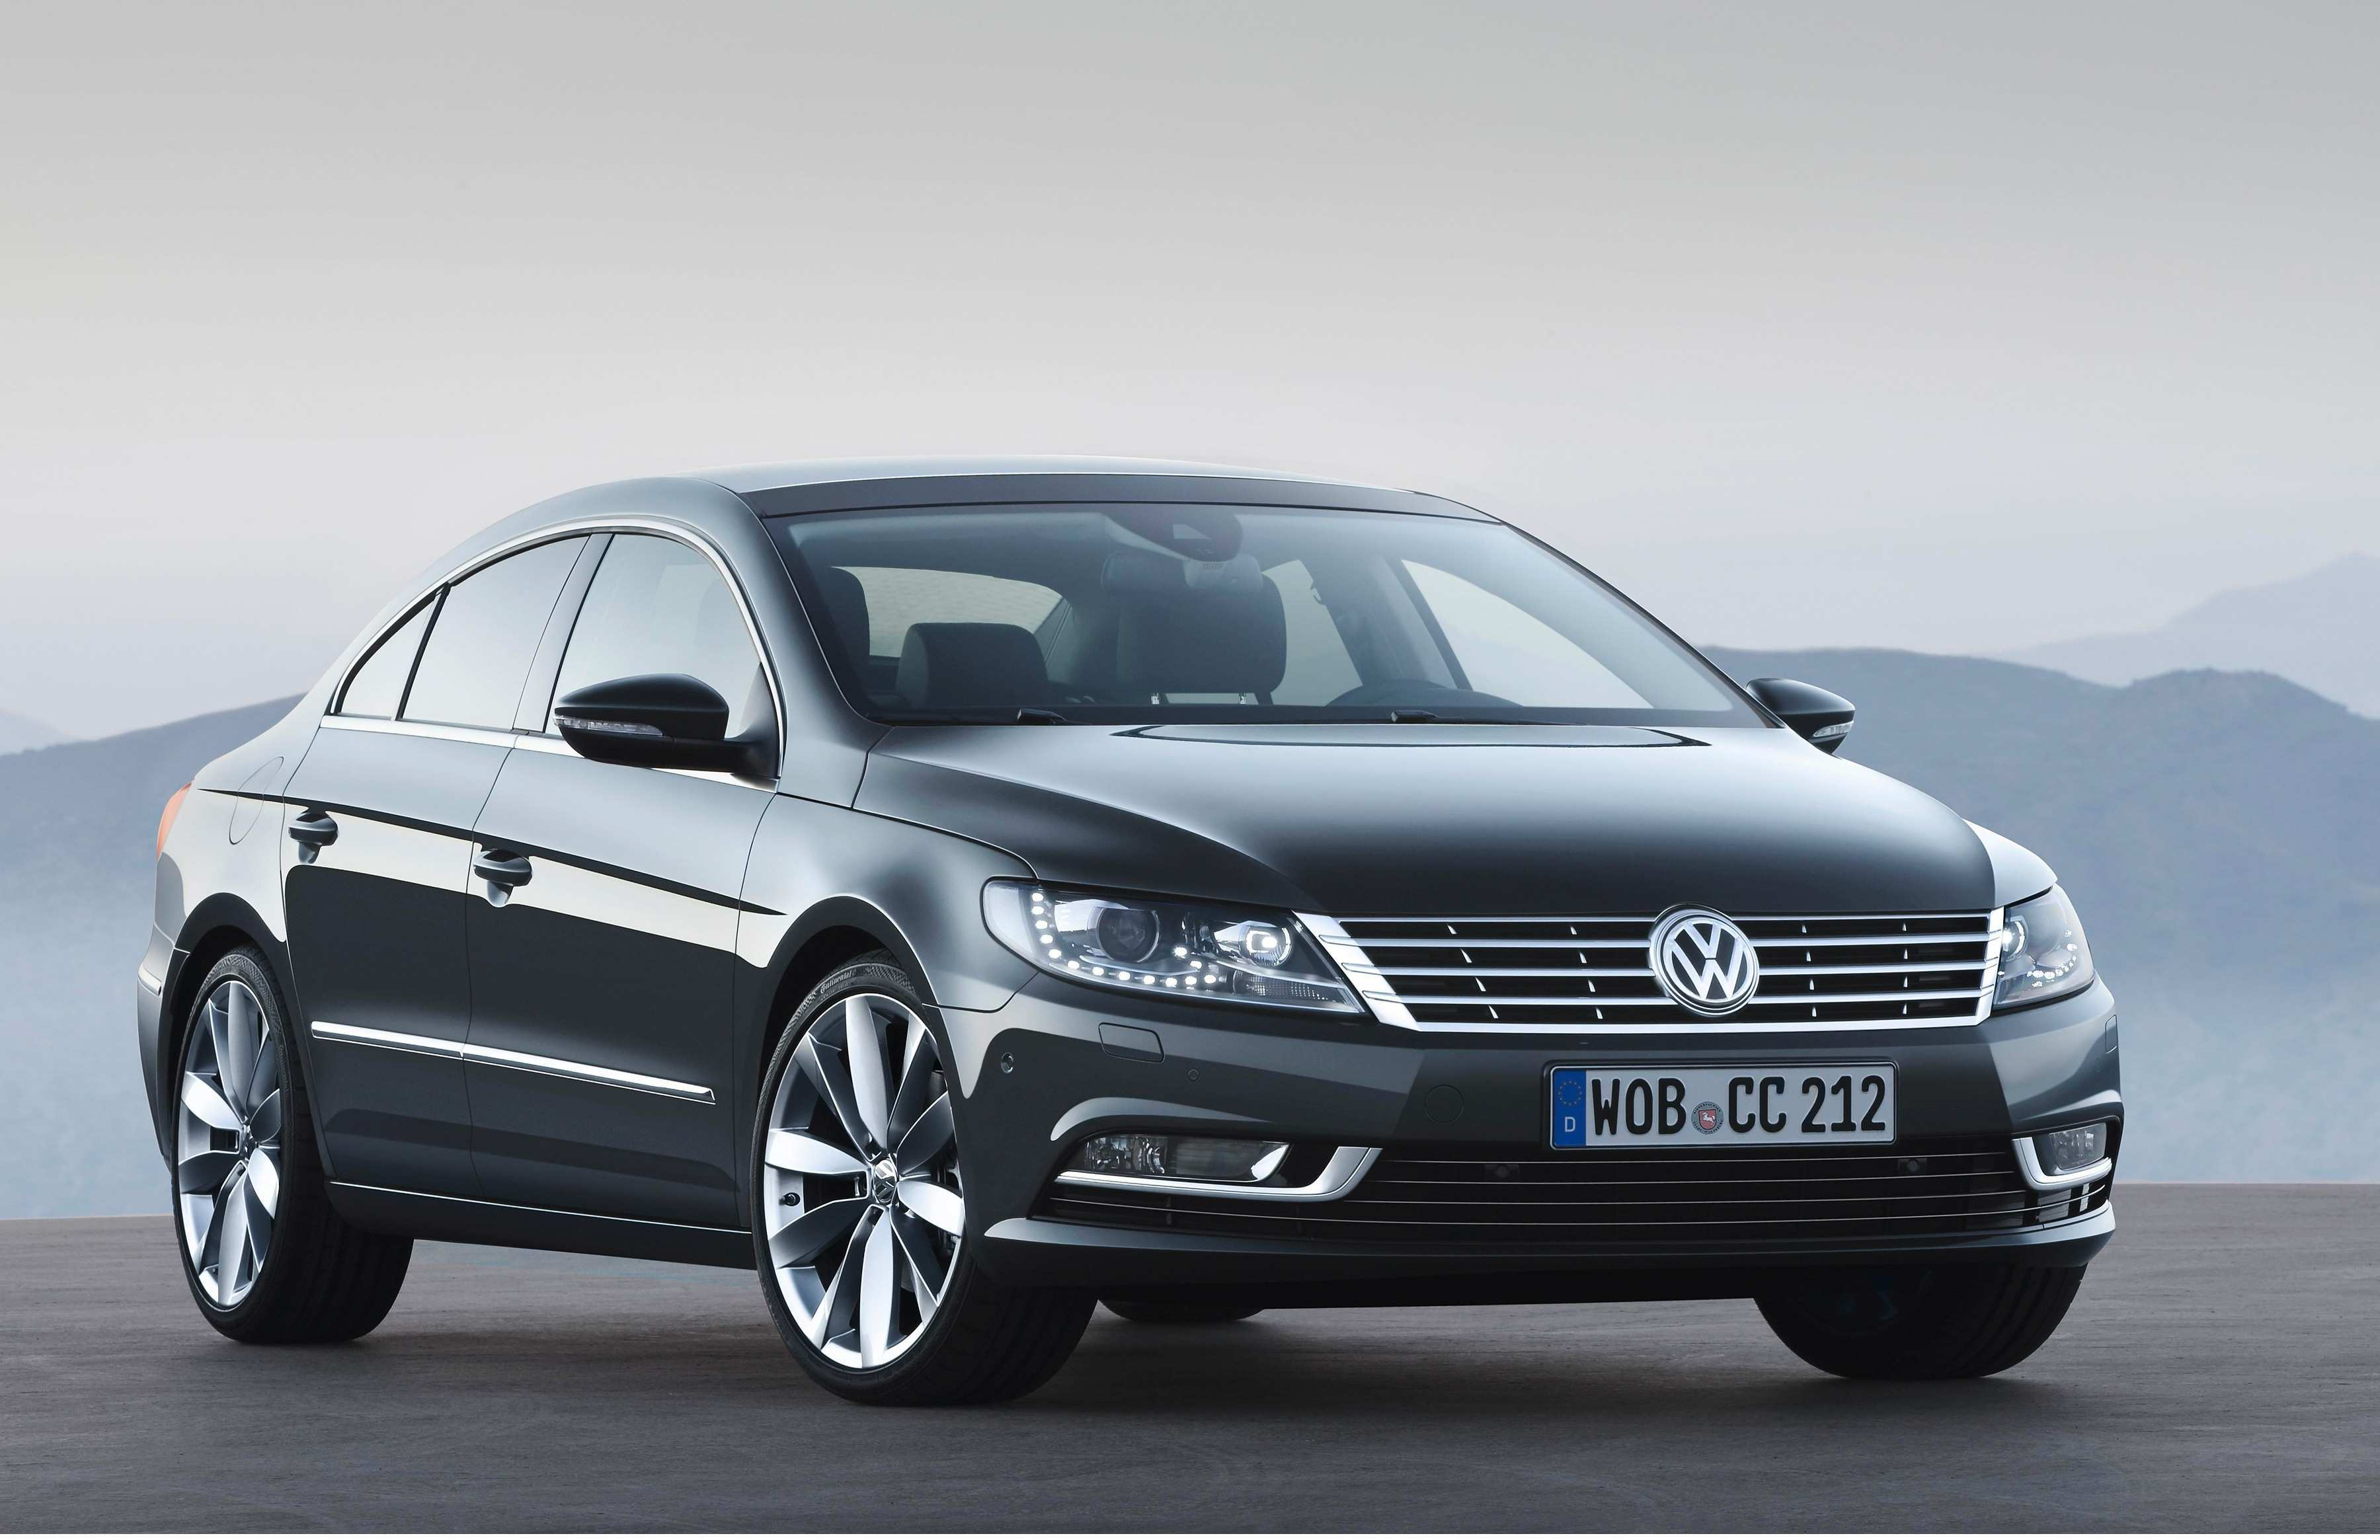 59 The Next Generation Vw Cc Style